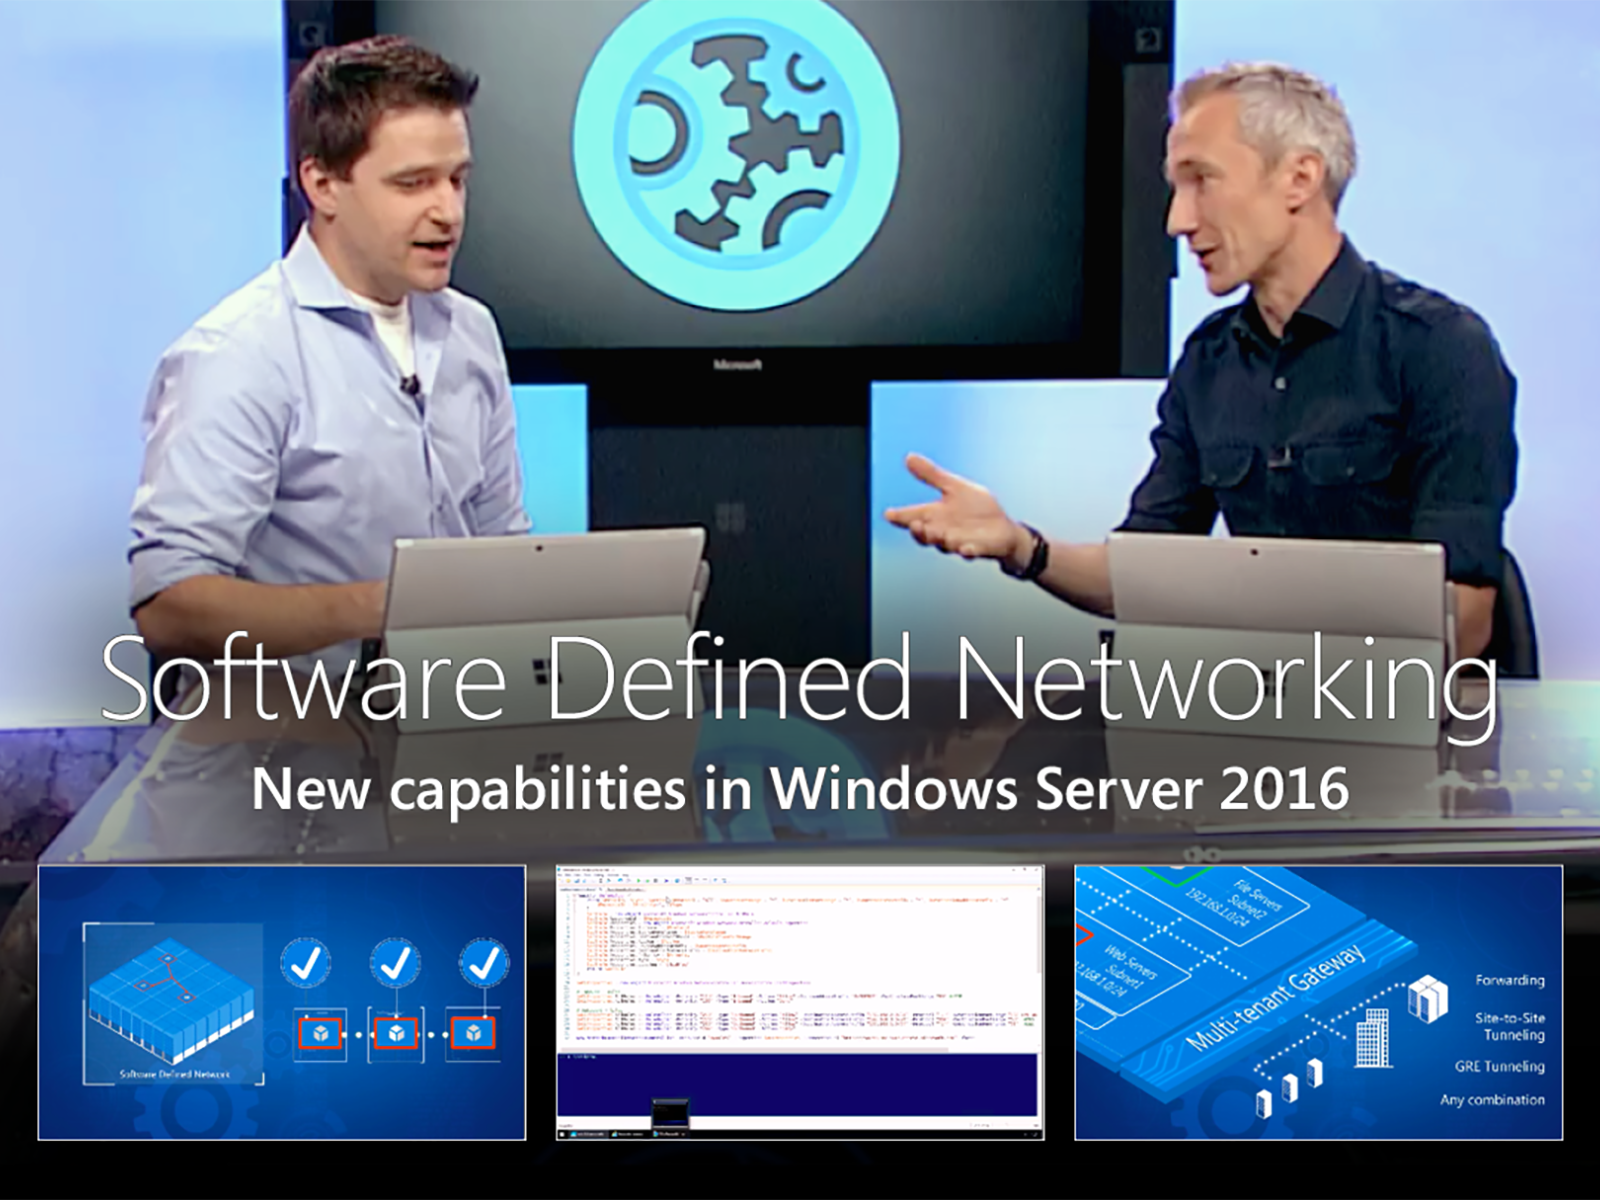 Artwork for An Introduction to Software Defined Networking with Windows Server 2016